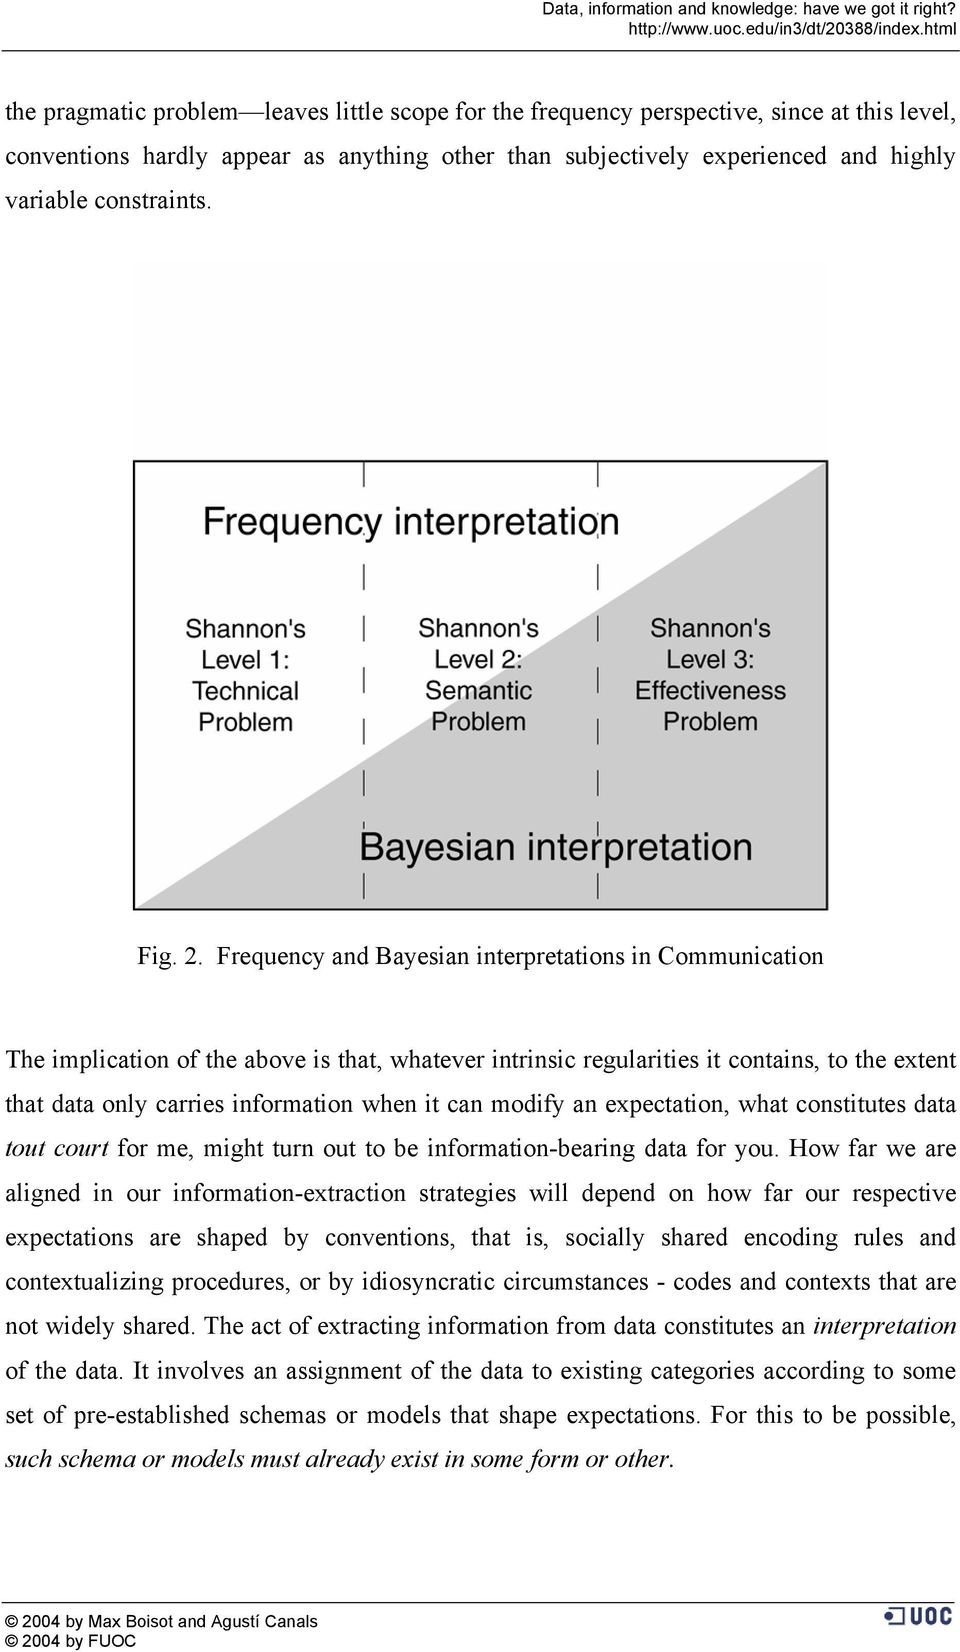 Frequency and Bayesian interpretations in Communication The implication of the above is that, whatever intrinsic regularities it contains, to the extent that data only carries information when it can